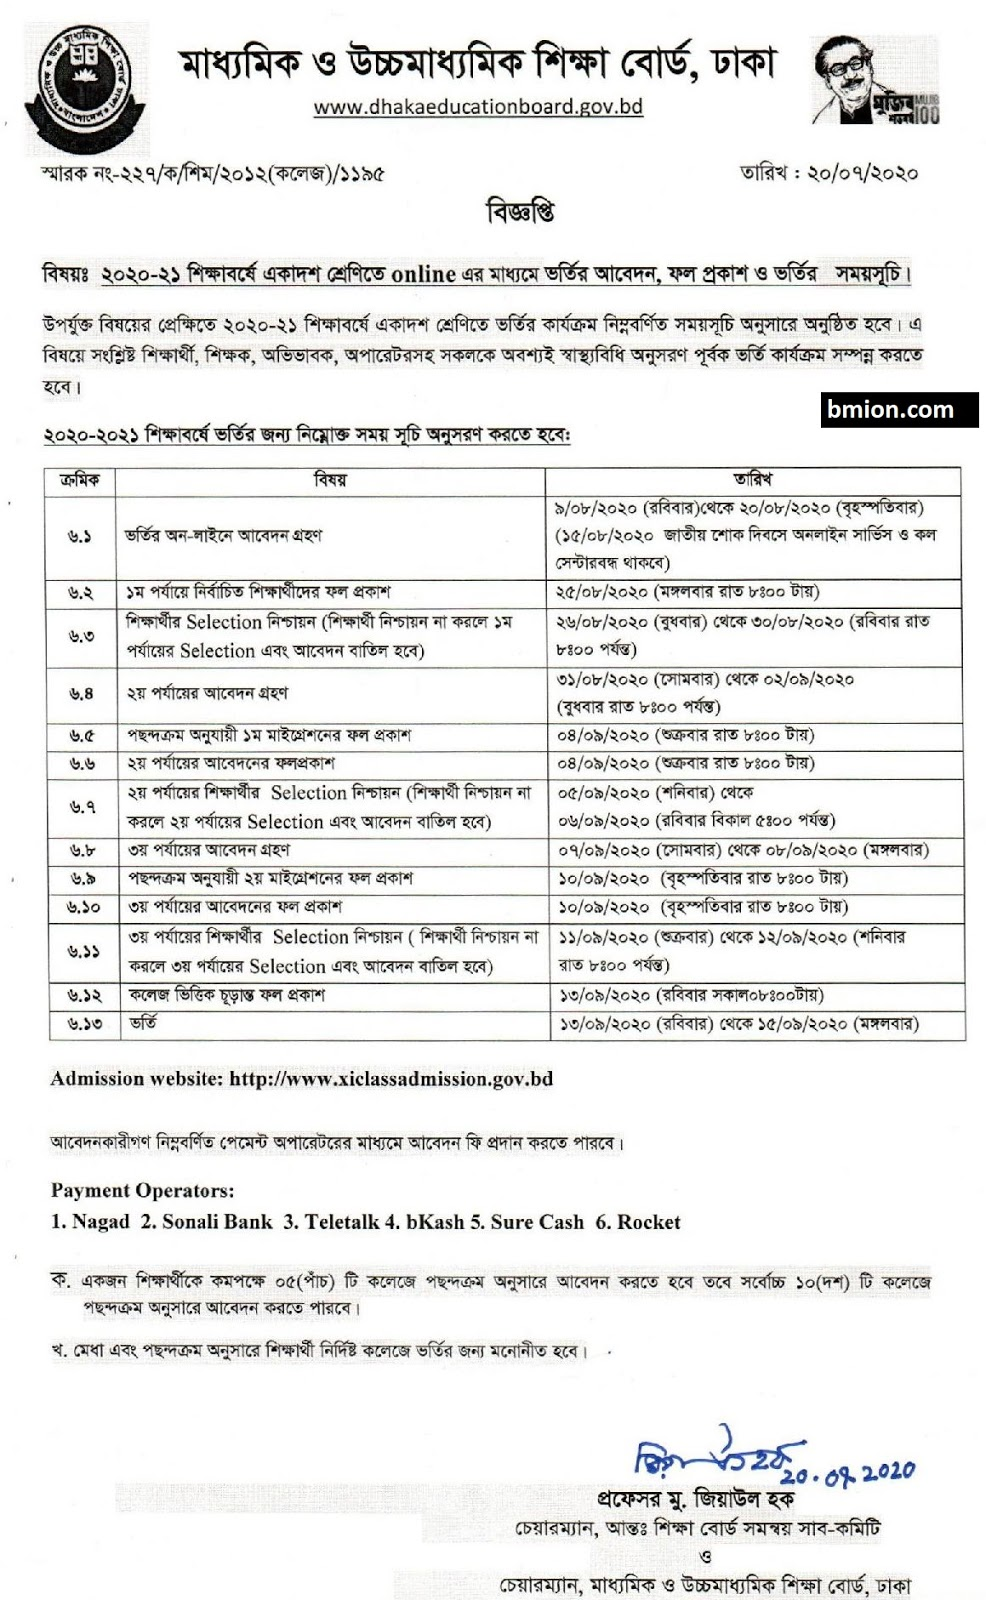 hsc college admission sms online process - result merit list migration 2020 - 2021  www.xiclassadmission.gov.bd